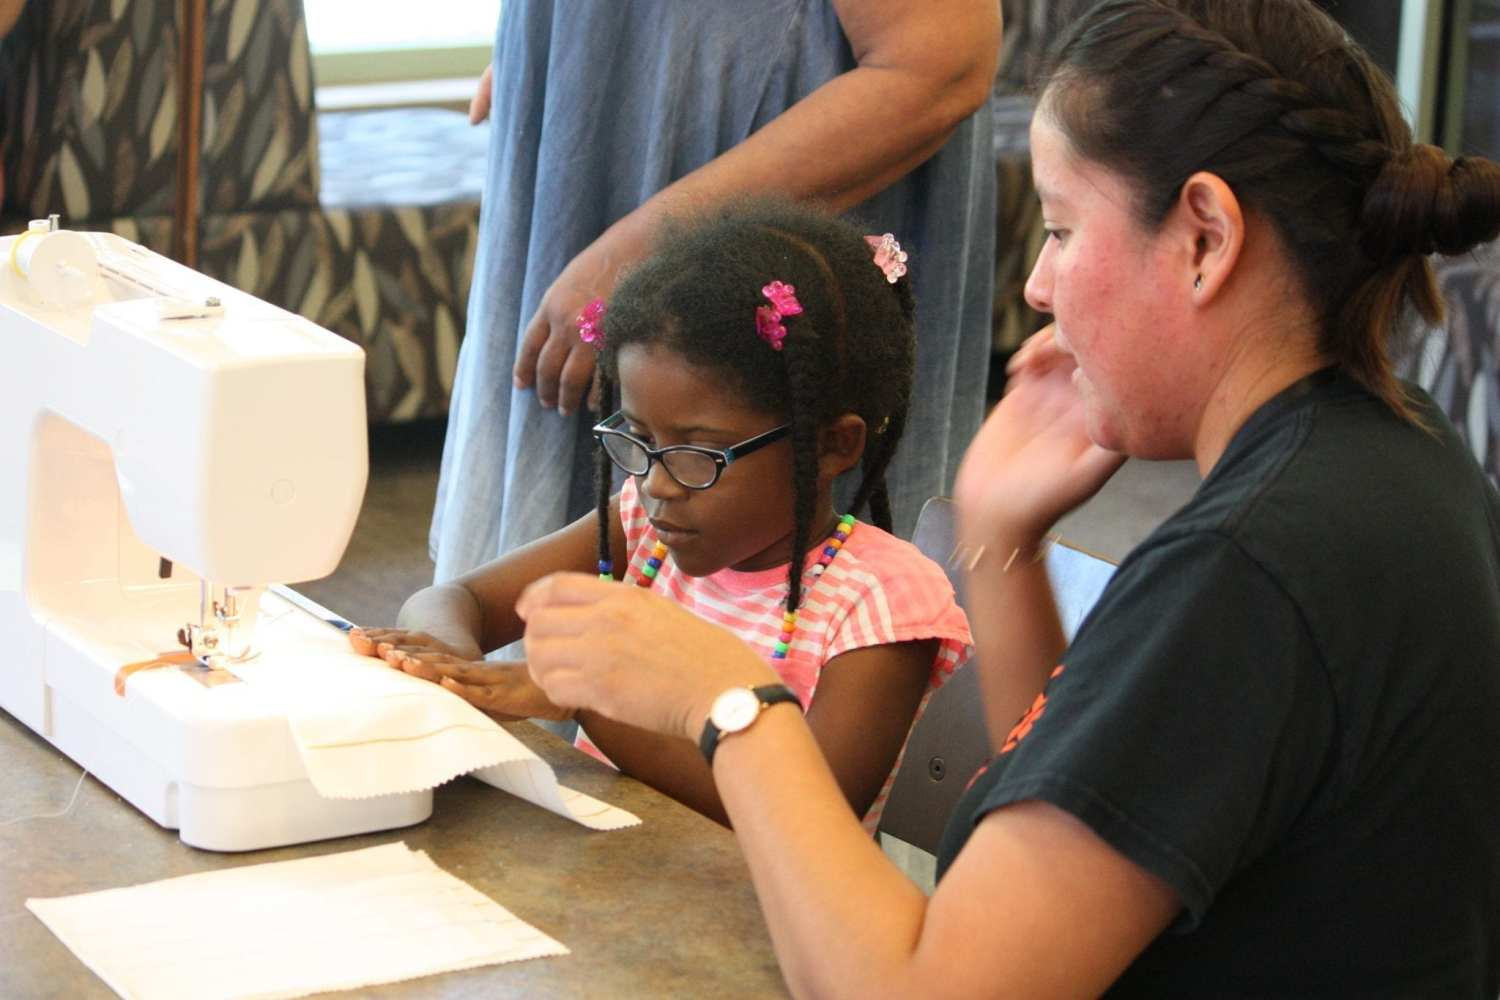 Child sewing - Hillsborough County Public Library